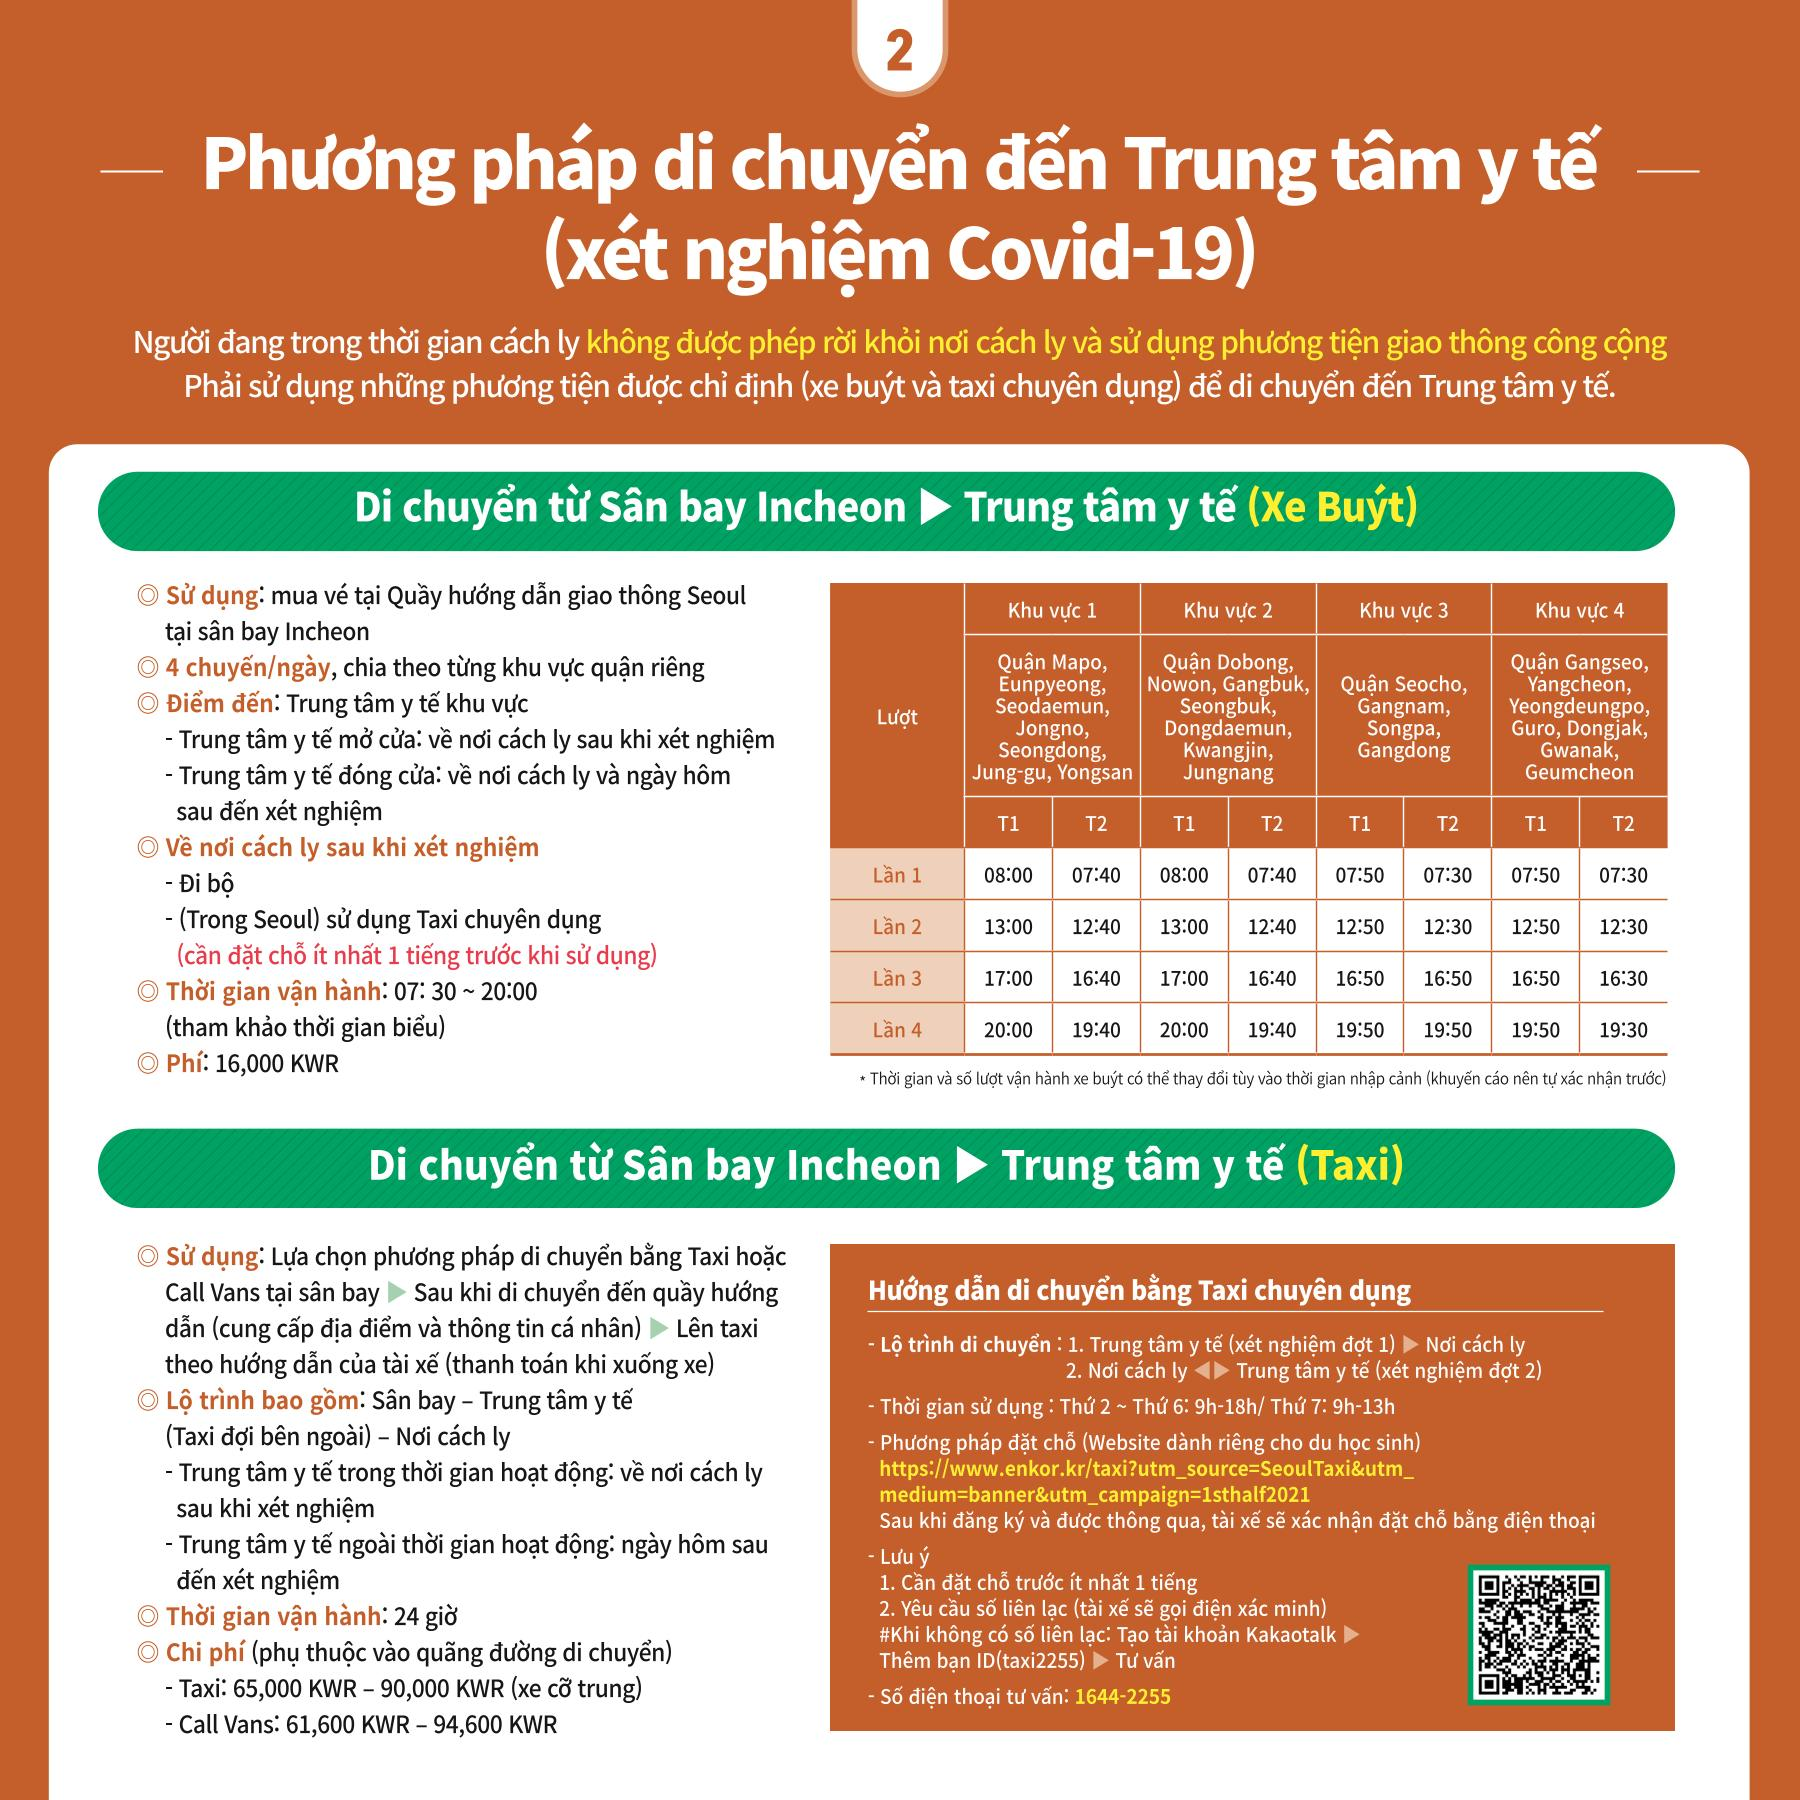 Huong dan cac quy dinh cach ly danh cho du hoc sinh pages 6